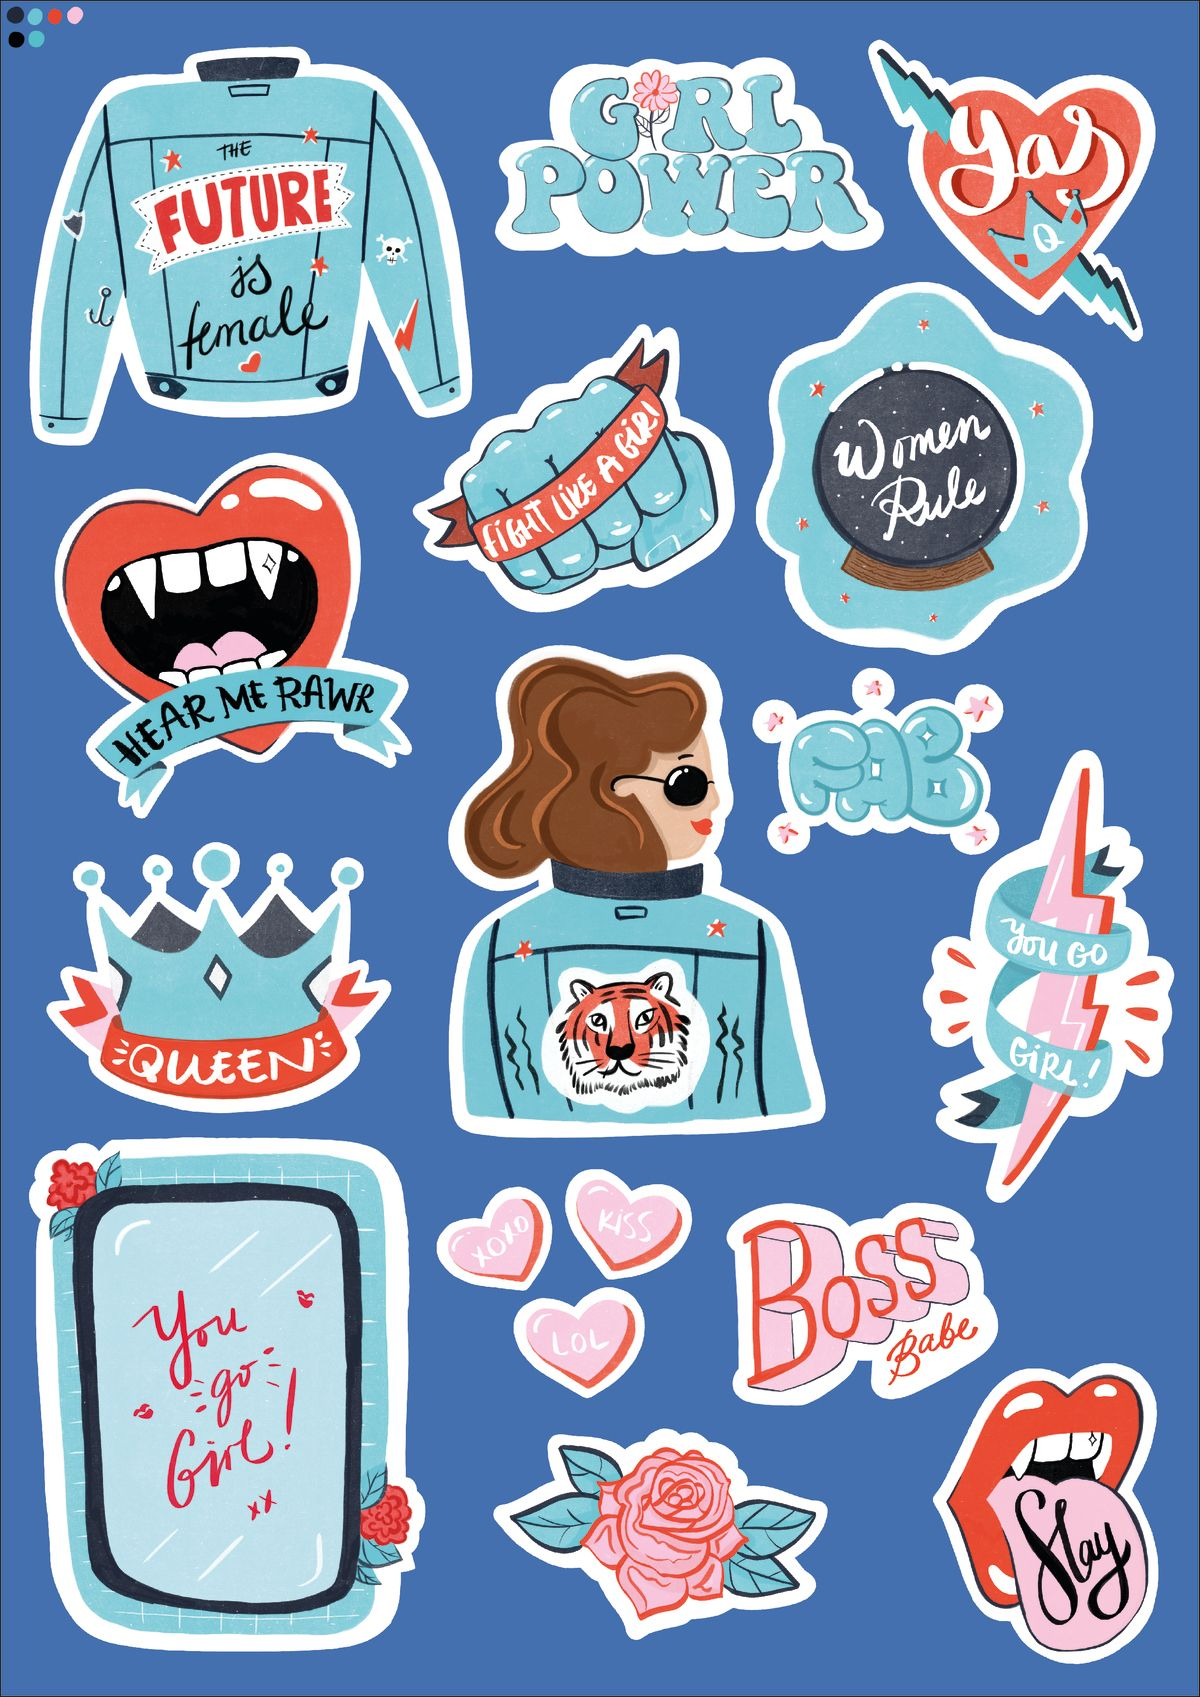 Cool Sticker Set Design For Digital Or Print Made